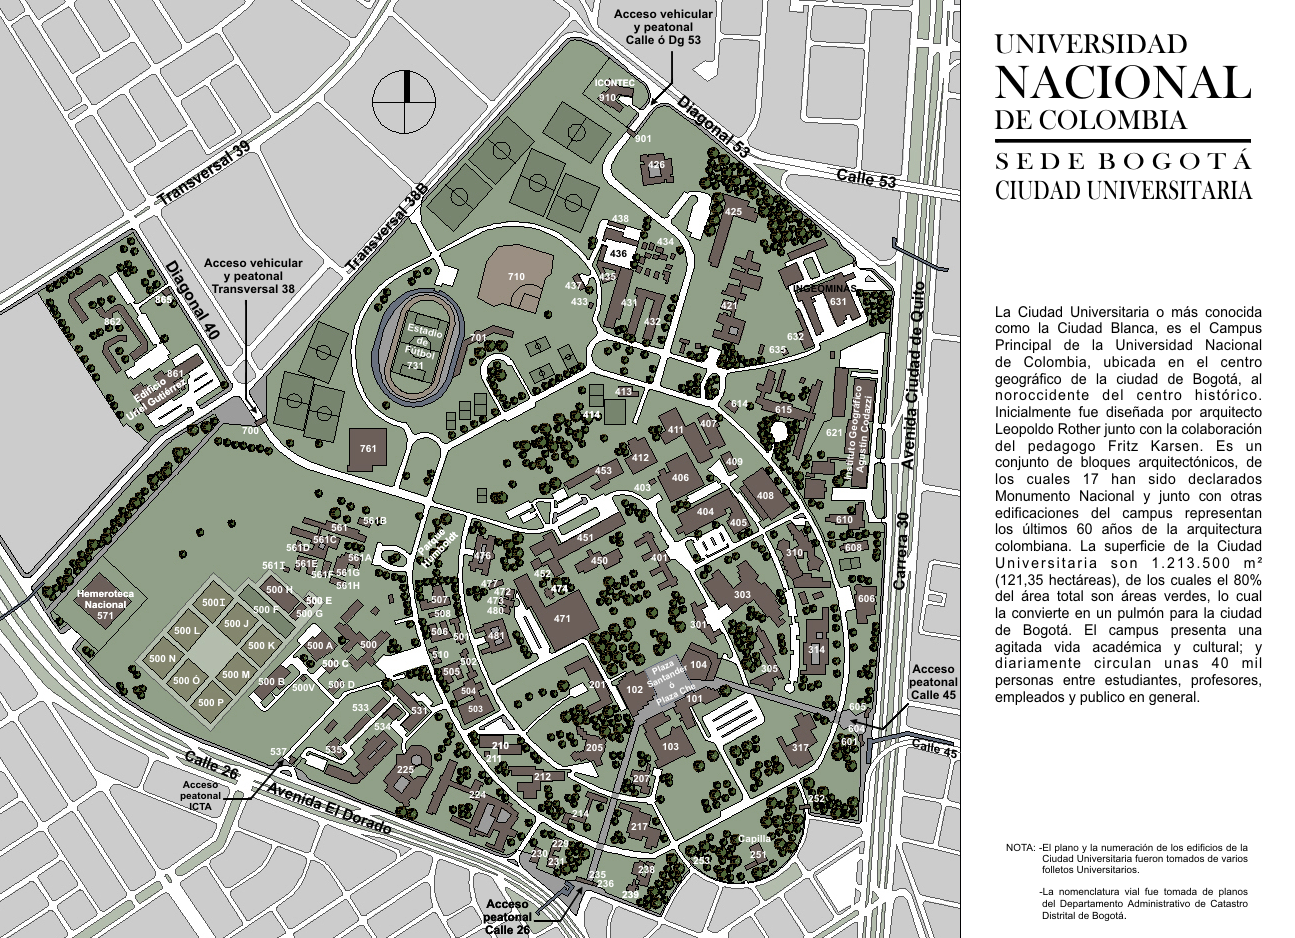 Mapa universidad nacional de colombia analizando el for Mapa facultad de arquitectura